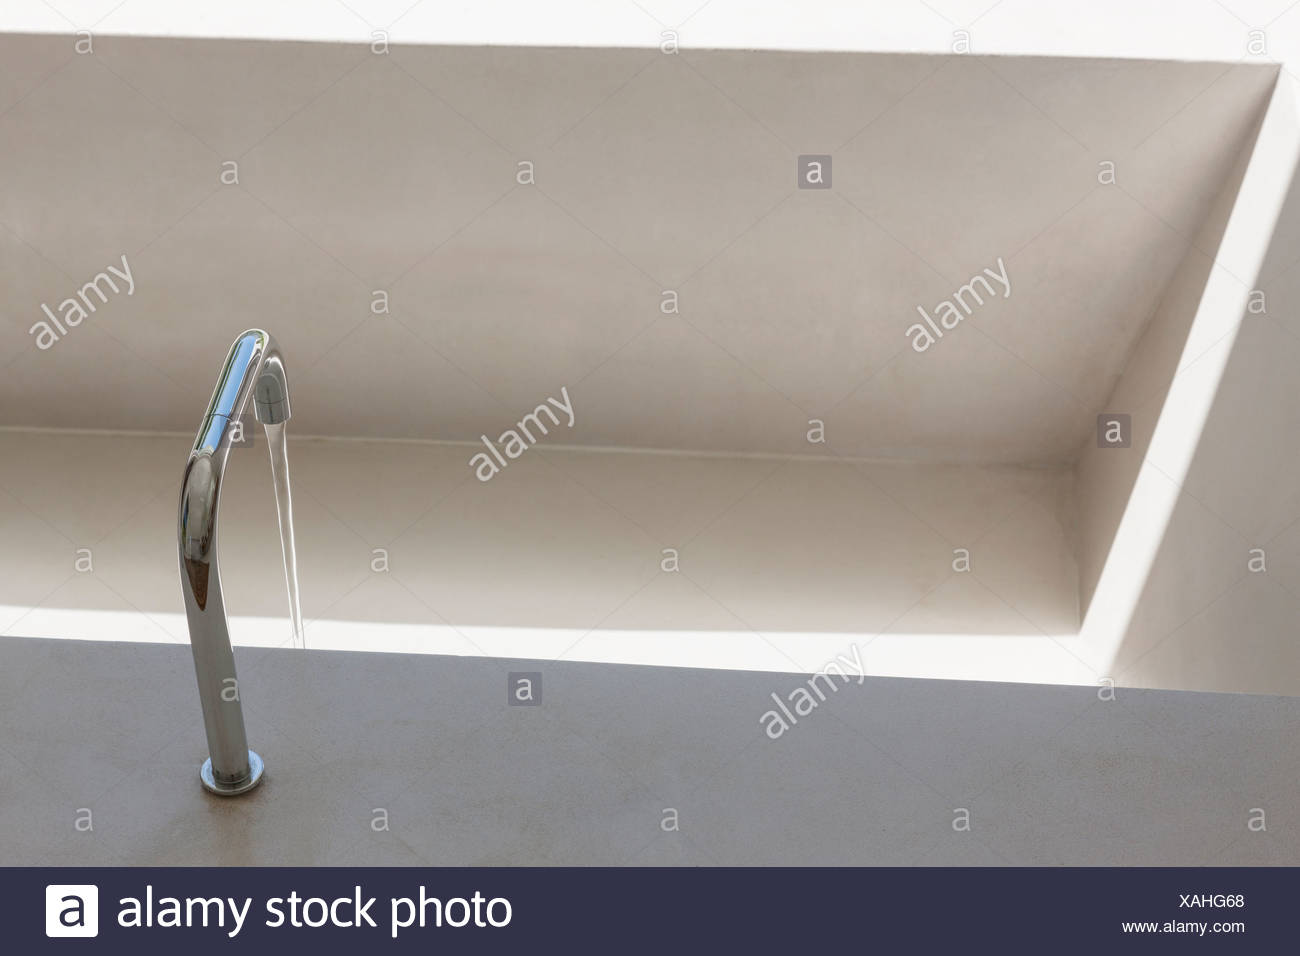 Water from faucet filling bathtub - Stock Image